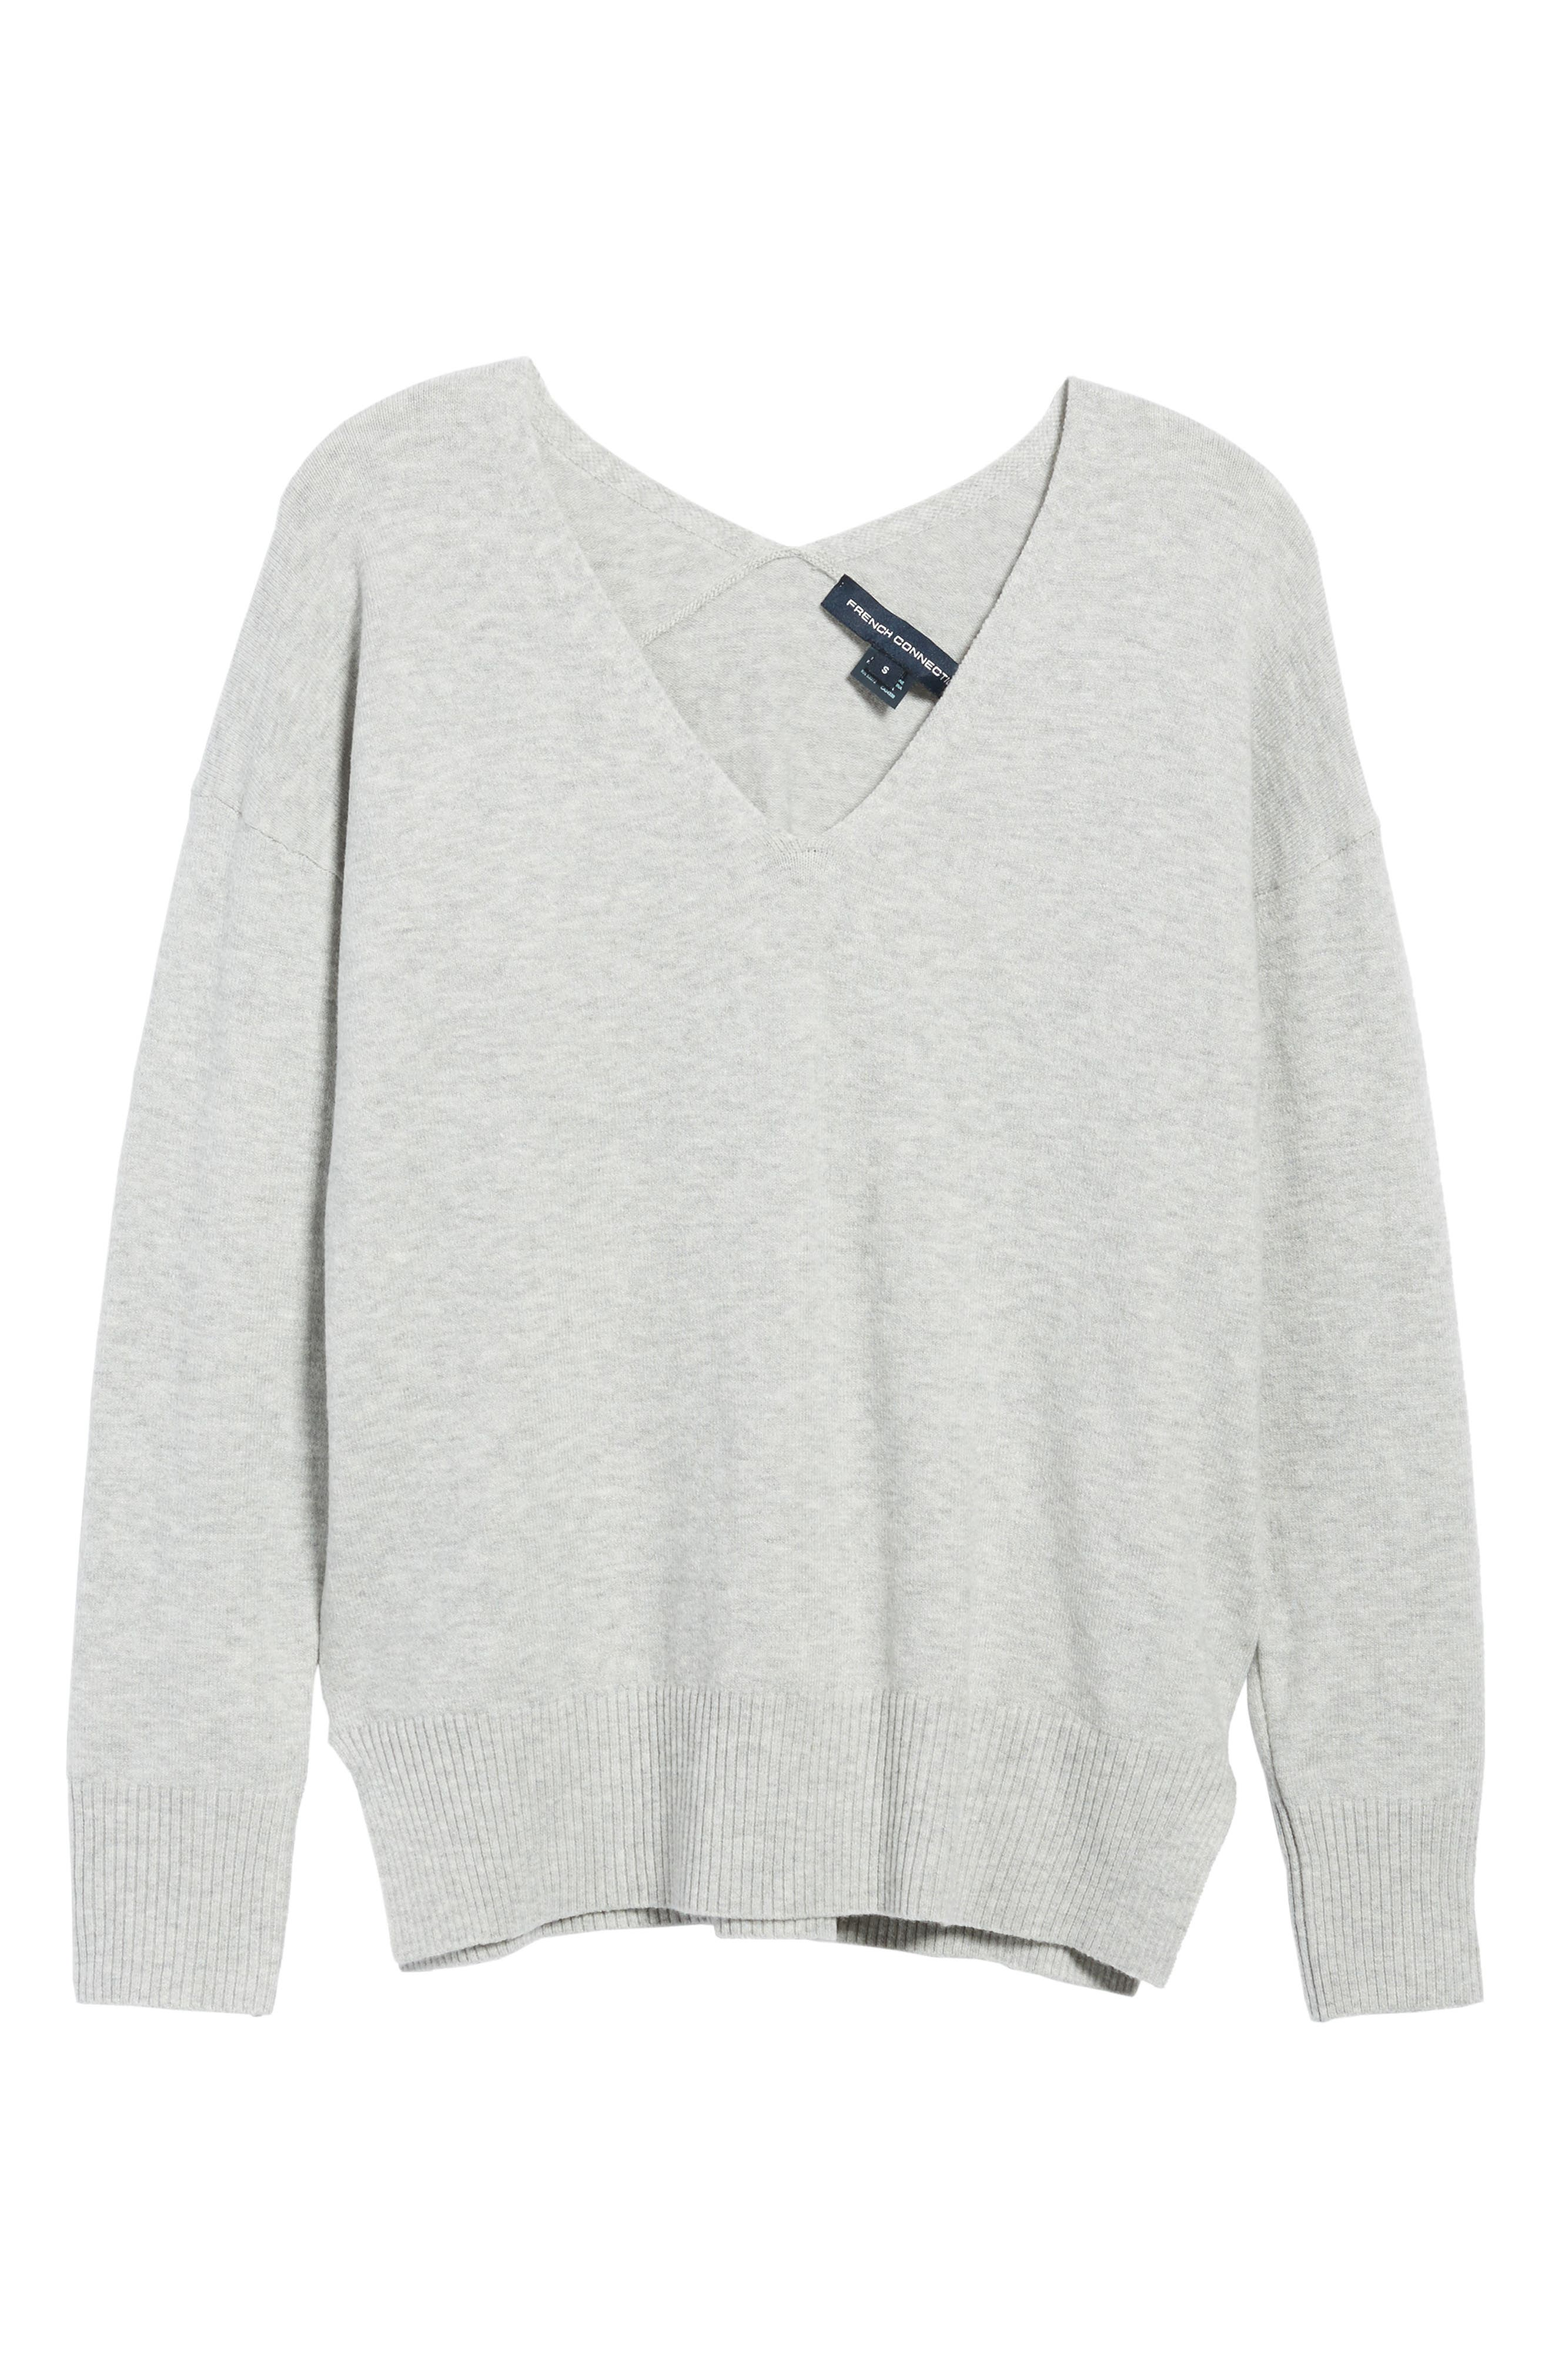 Alternate Image 1 Selected - French Connection Della Vhari V-Neck Sweater